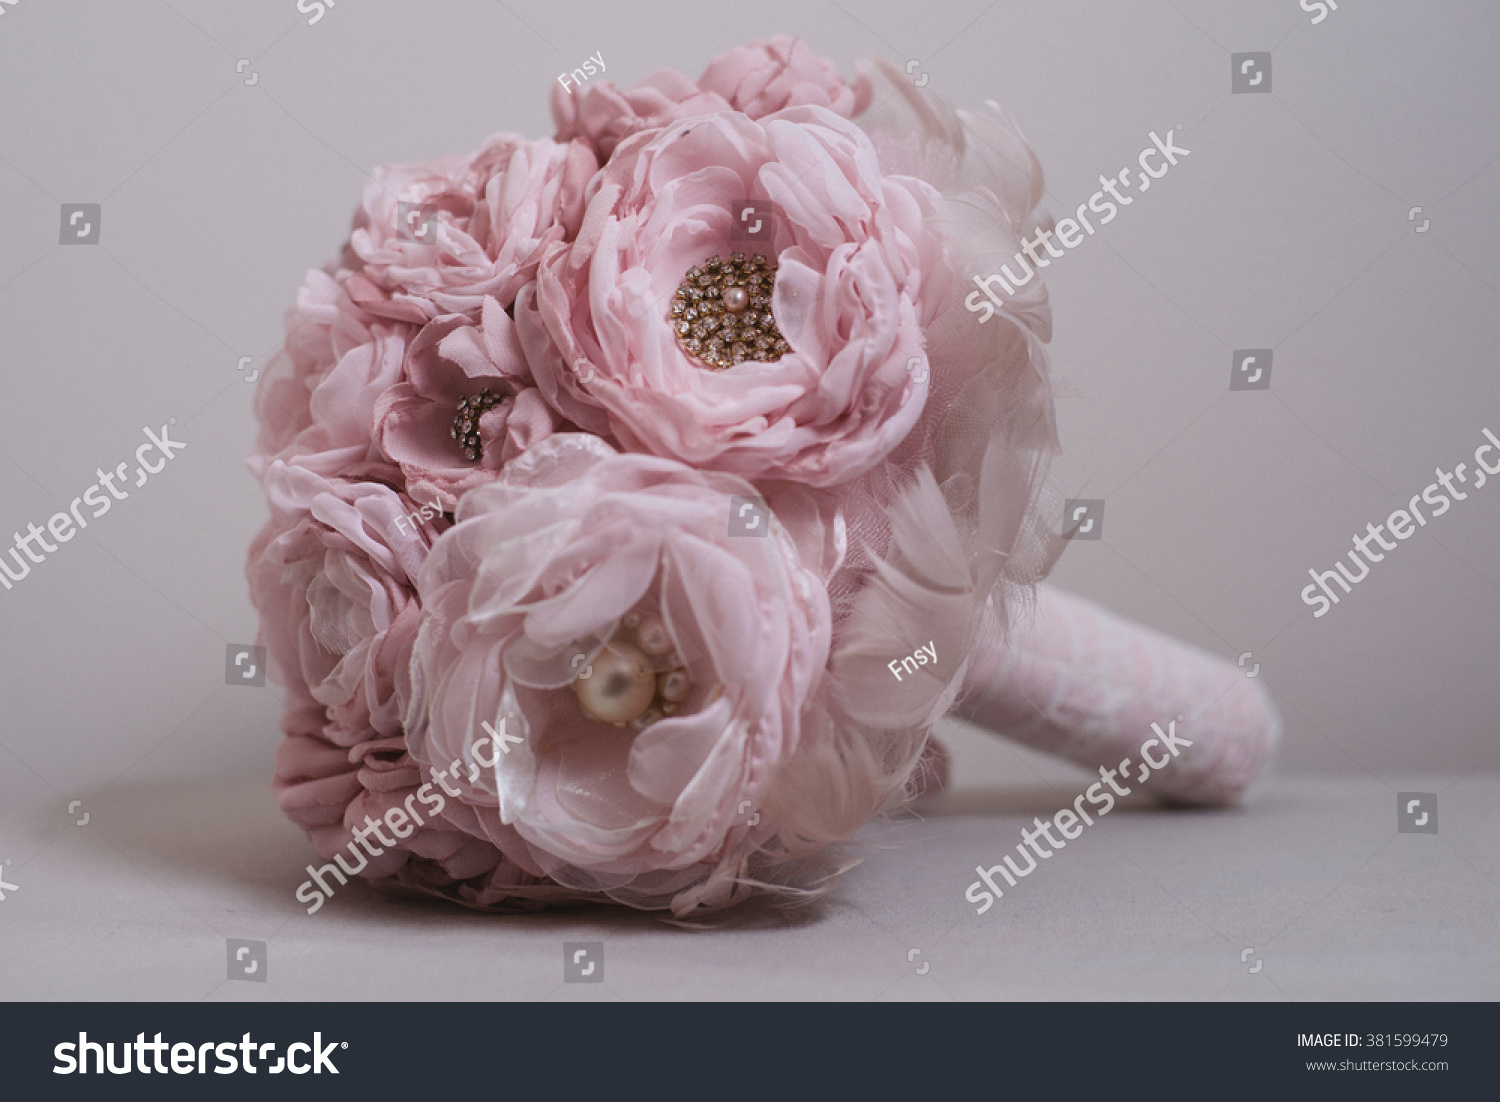 Handmade brooch bouquet fabric wedding bouquet stock photo edit now handmade brooch bouquet fabric wedding bouquet silk flower style cabbage roses with rhinestone and izmirmasajfo